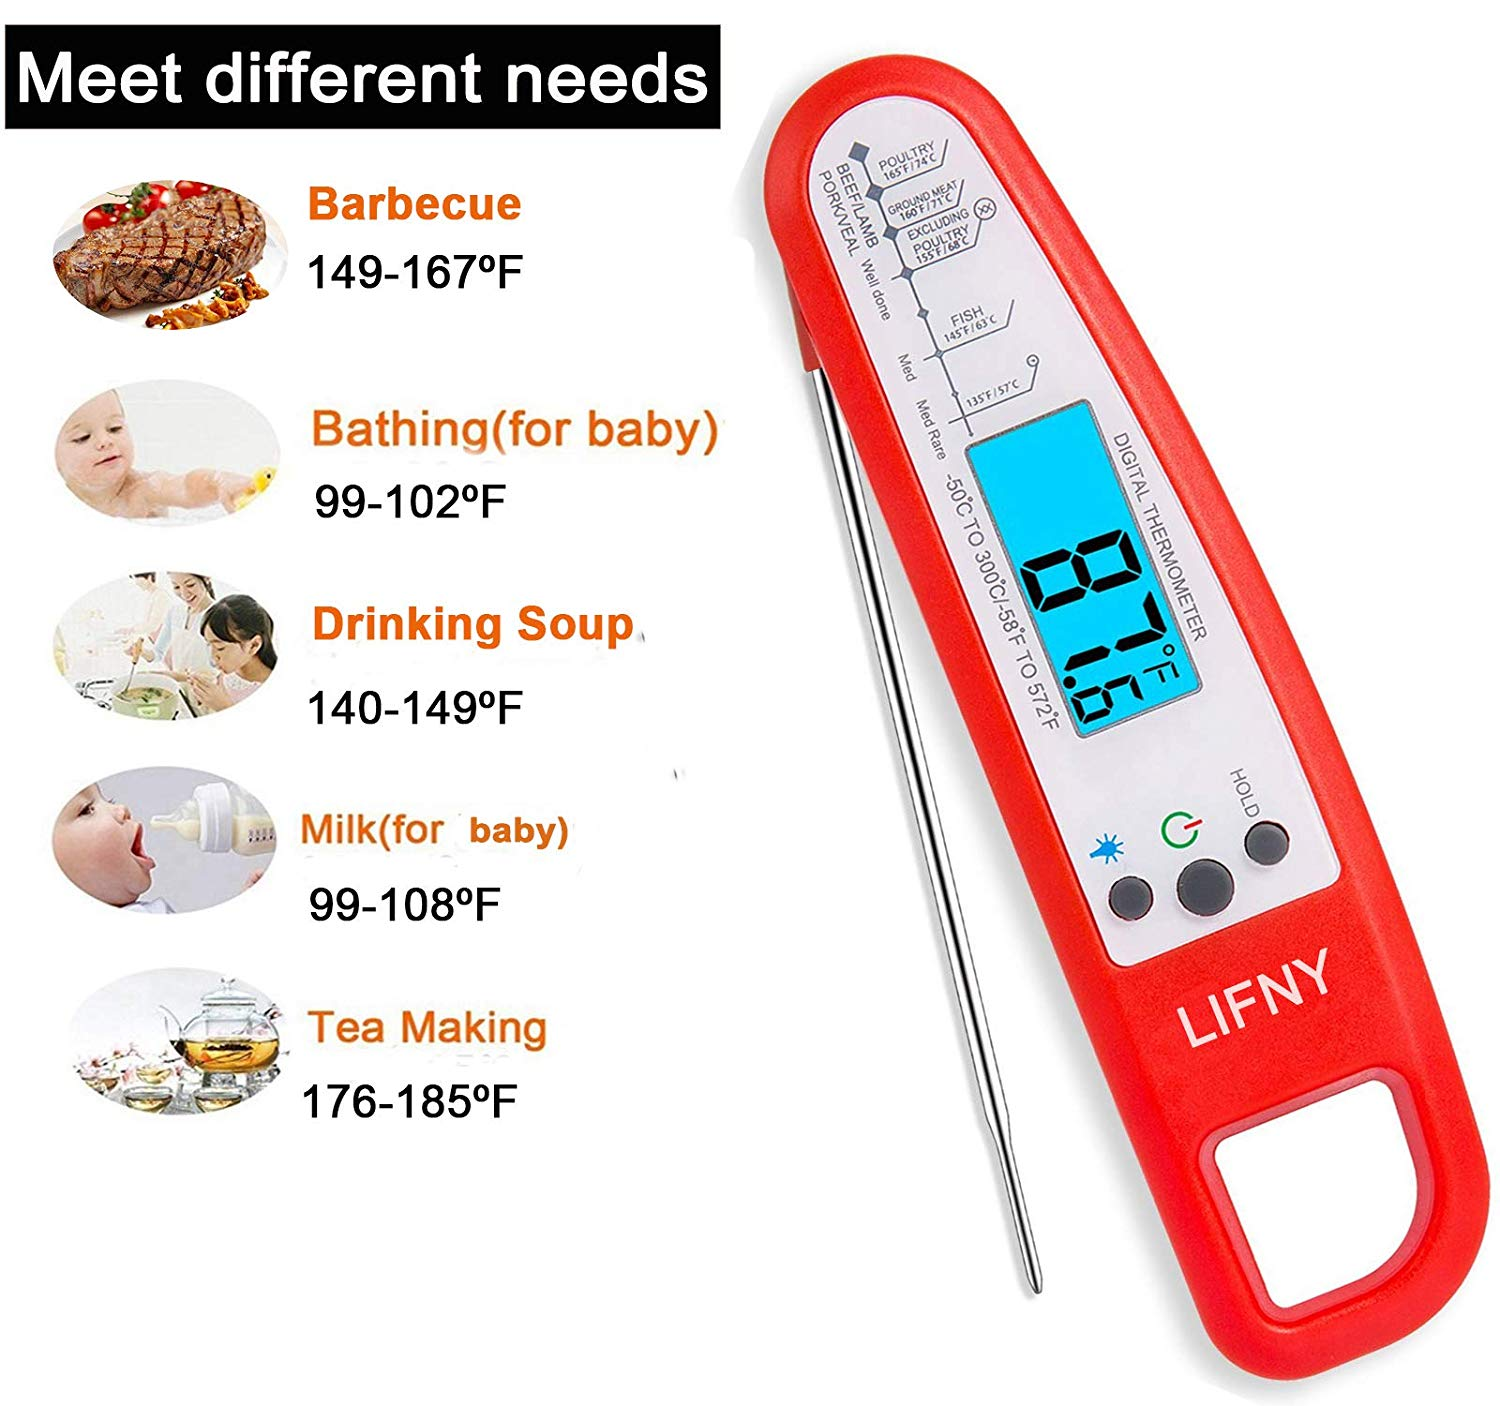 LIFNY Meat Instant Read Grill Calibration and Backlit Waterproof for Food,Milk,Tea,BBQ-Digital Cooking Thermometer with Probe, red